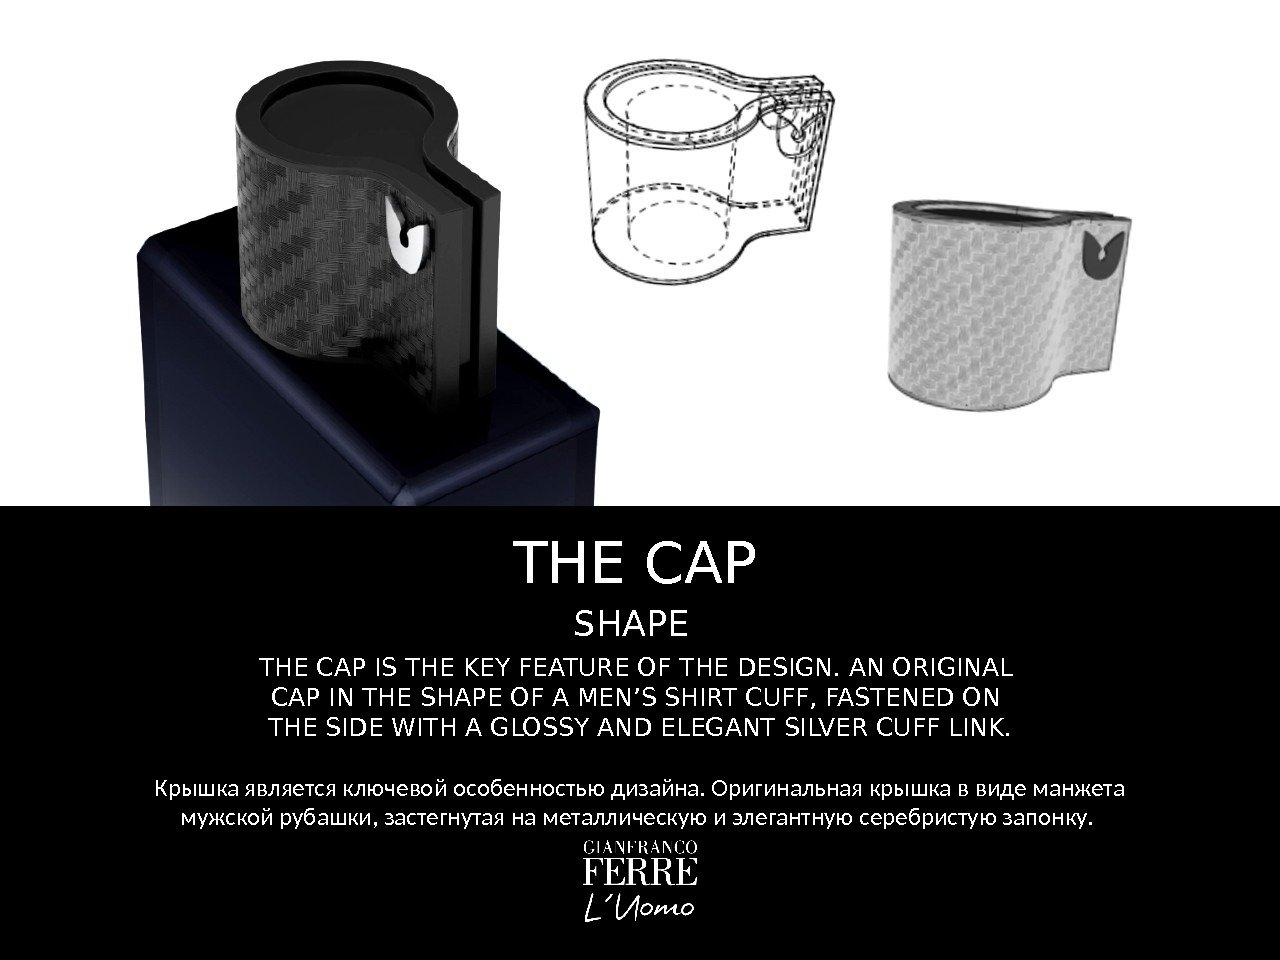 THE CAP IS THE KEY FEATURE OF THE DESIGN. AN ORIGINAL CAP IN THE